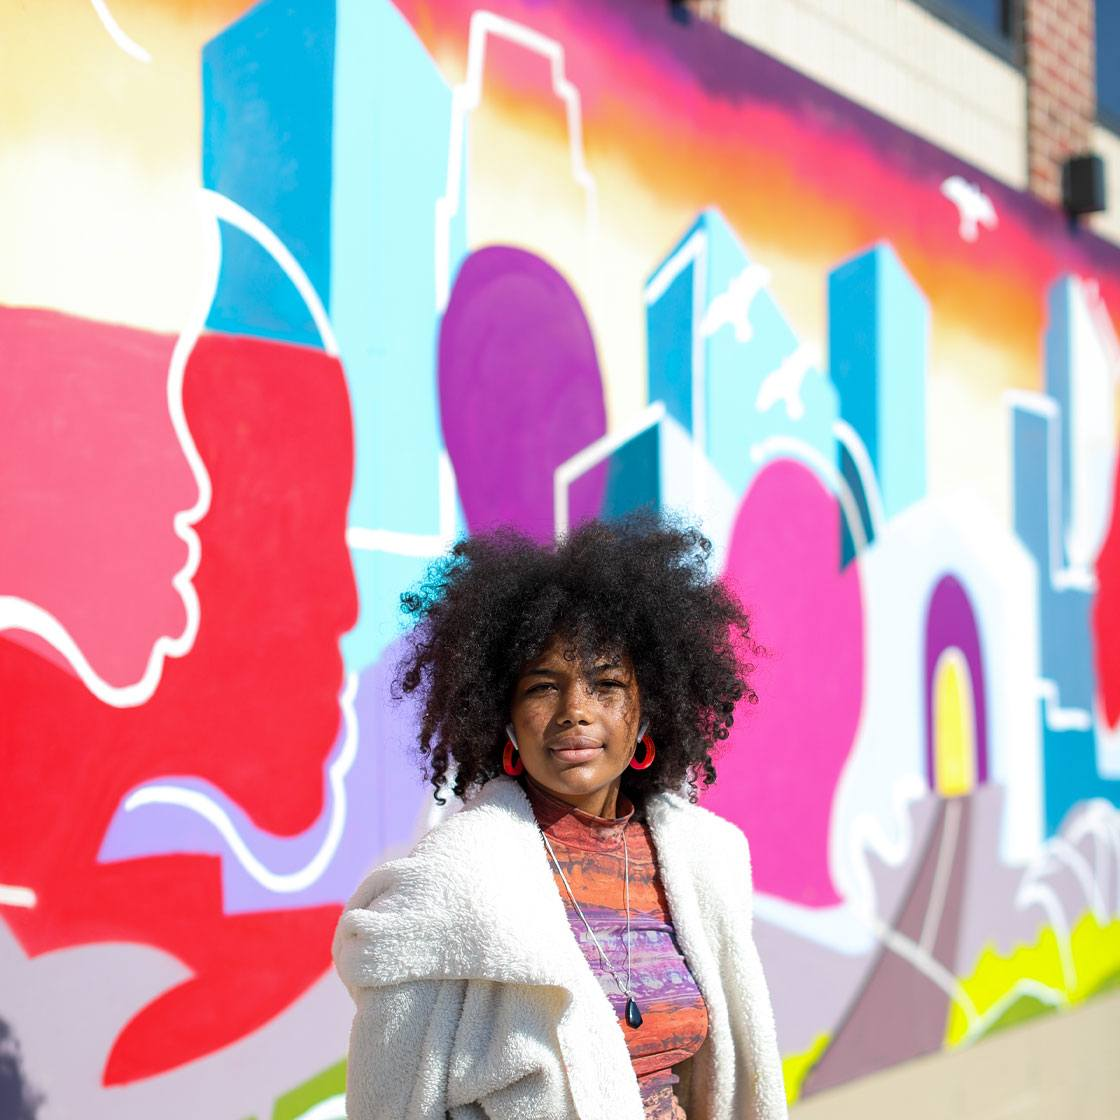 A mural painted with acrylic and spray paints depicting faces and buildings intermingling to represent the city of Minneapolis working together in unity. Apprentice Bereket Weddall poses in front of the mural.